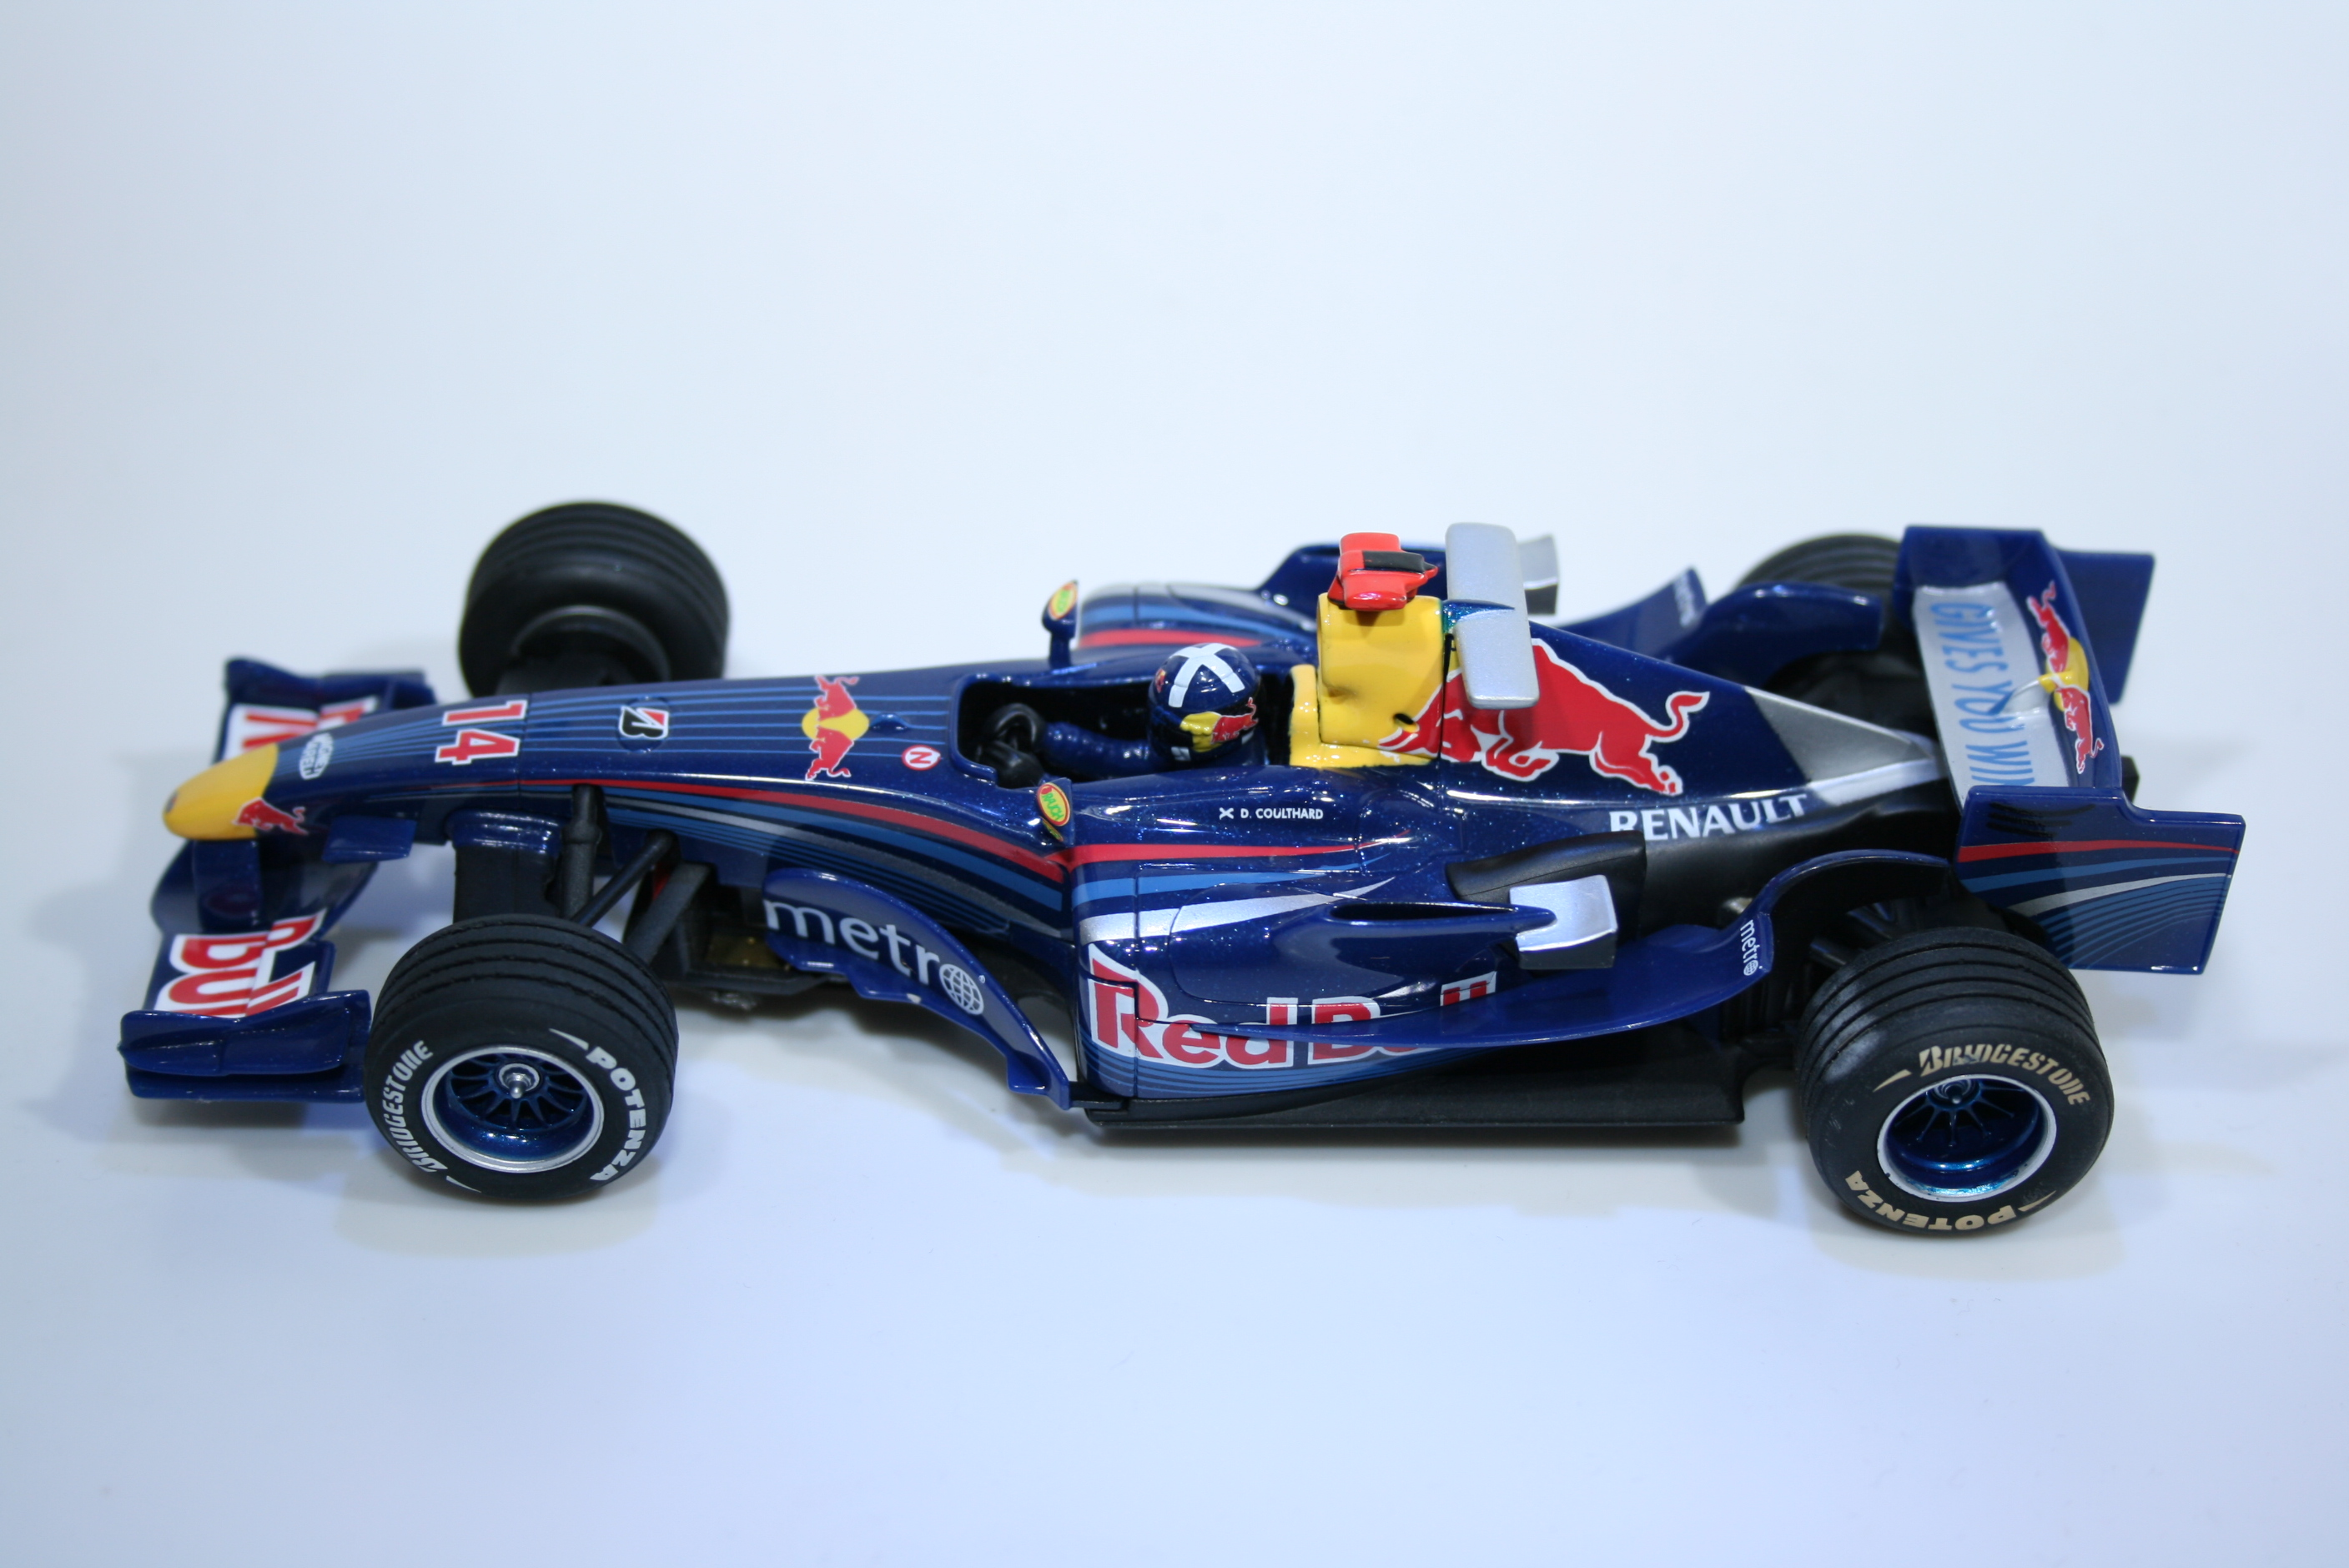 412 Red Bull RB3 2007 D Coulthard Carrera 27182 2007 Boxed